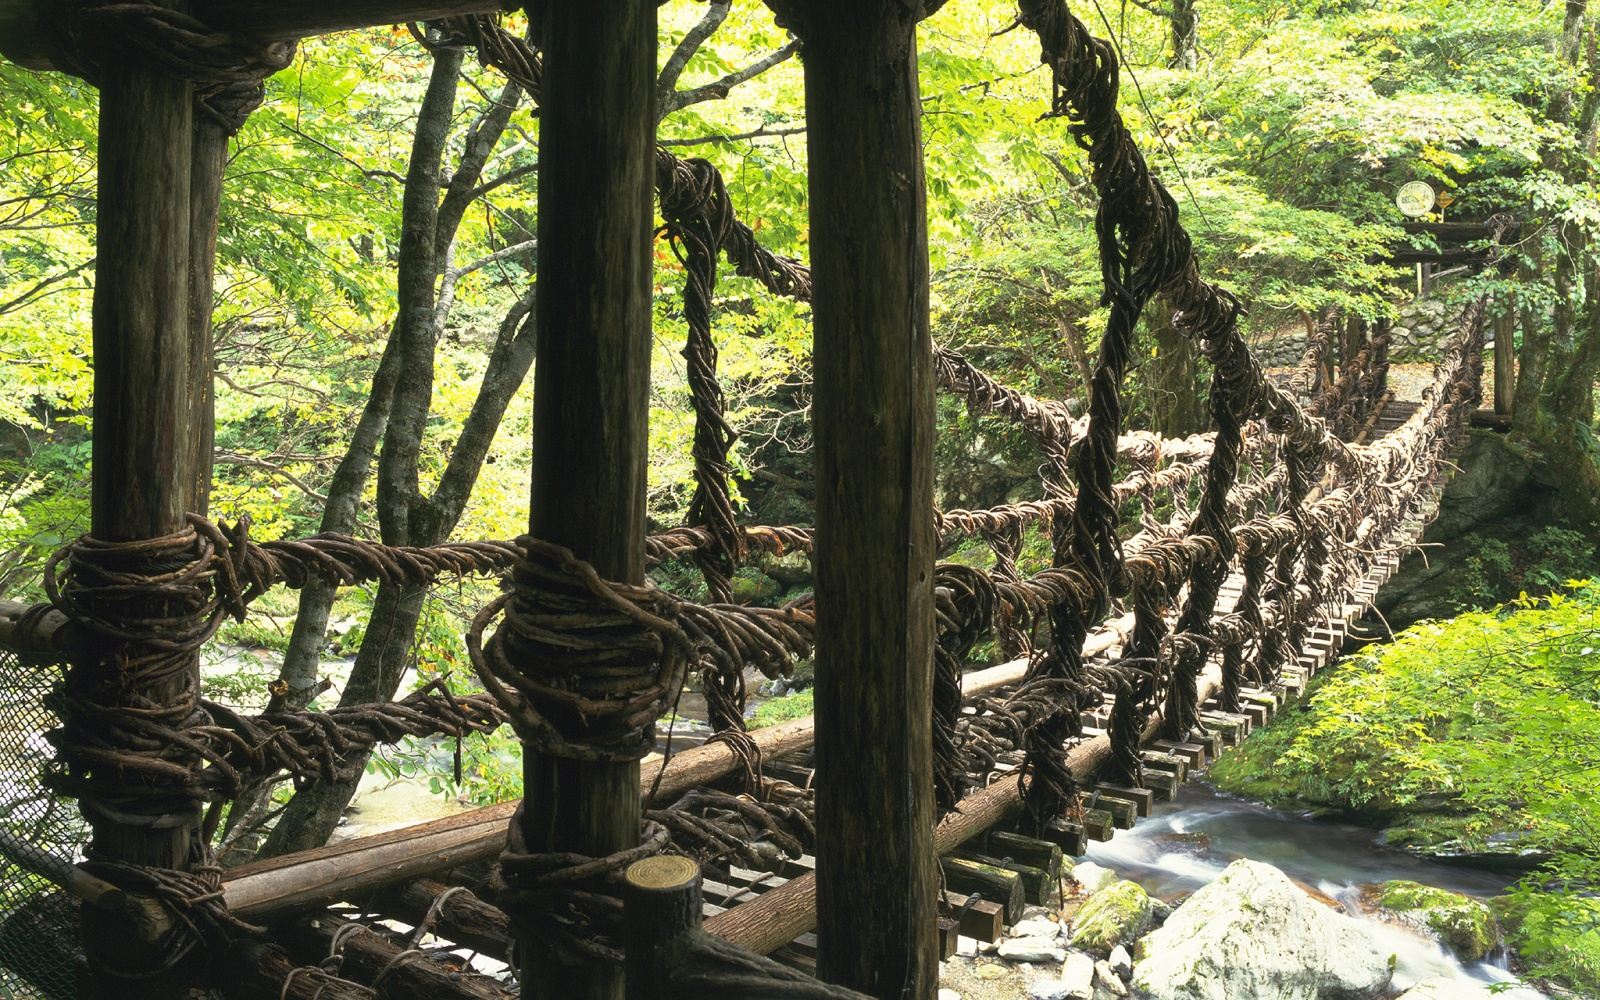 Iya Valley Vine Bridges, Japan